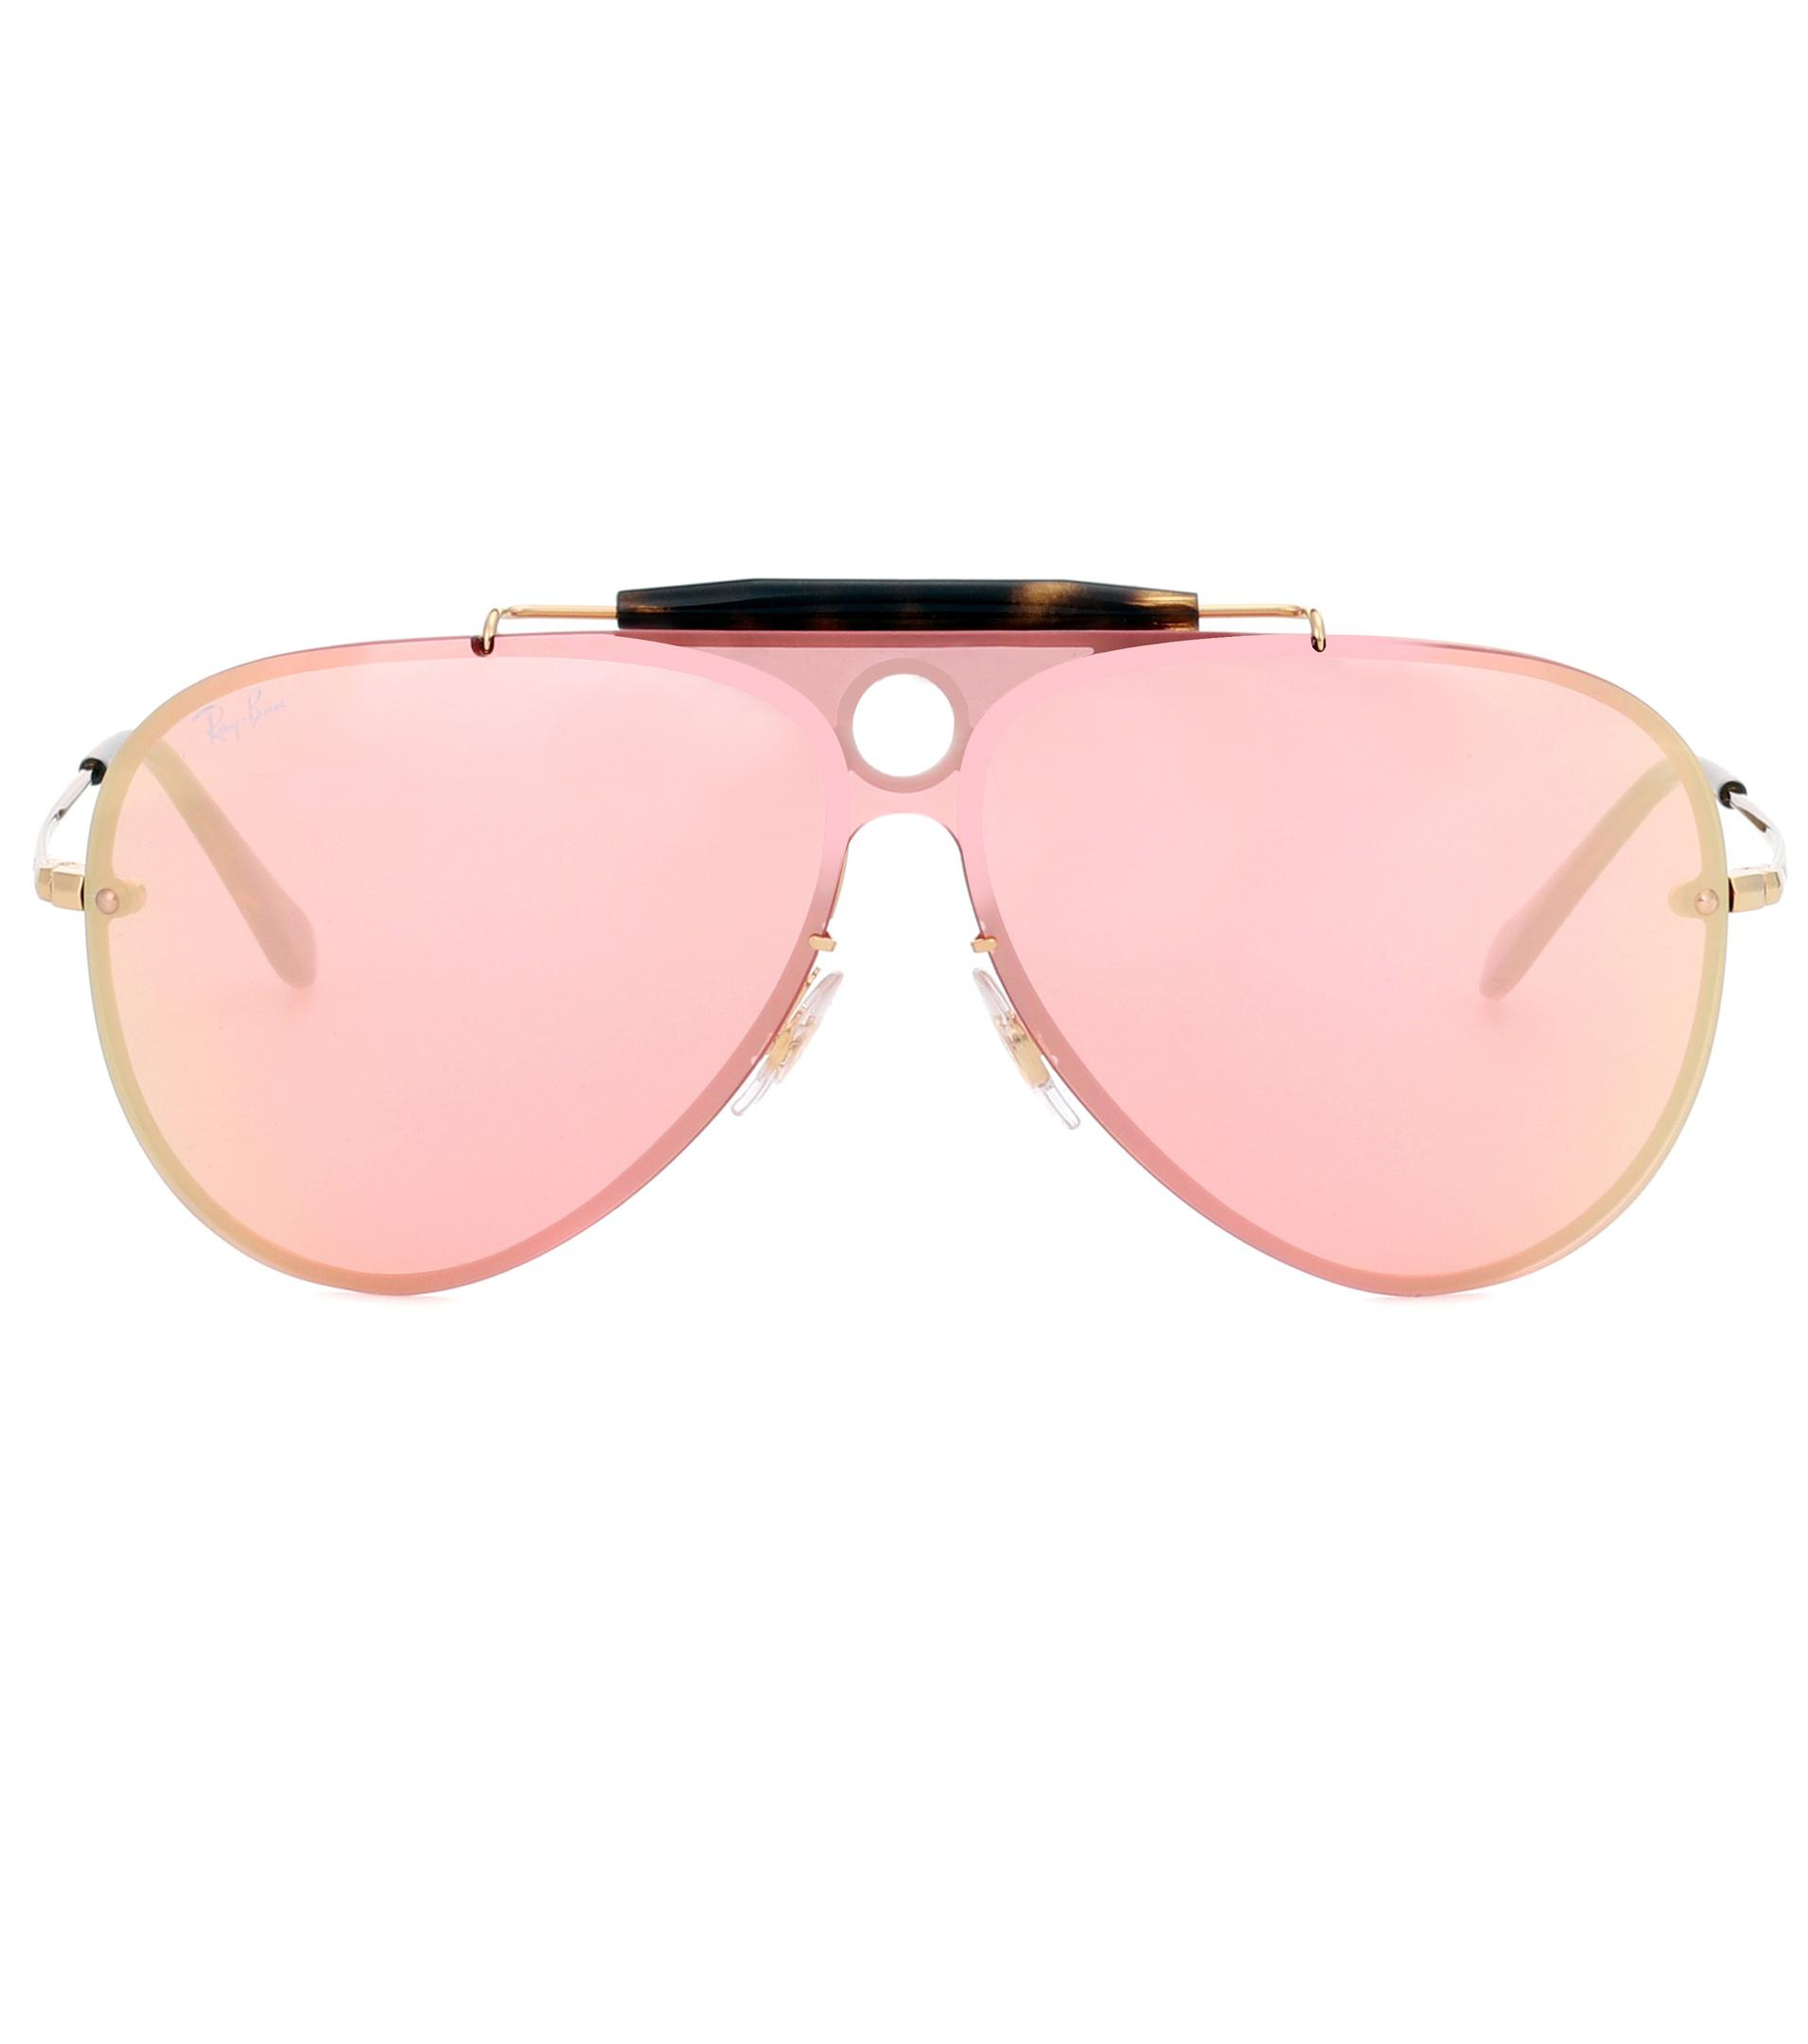 571474c6e2 Lyst - Ray-Ban Rb3581 Blaze Shooter Sunglasses in Pink